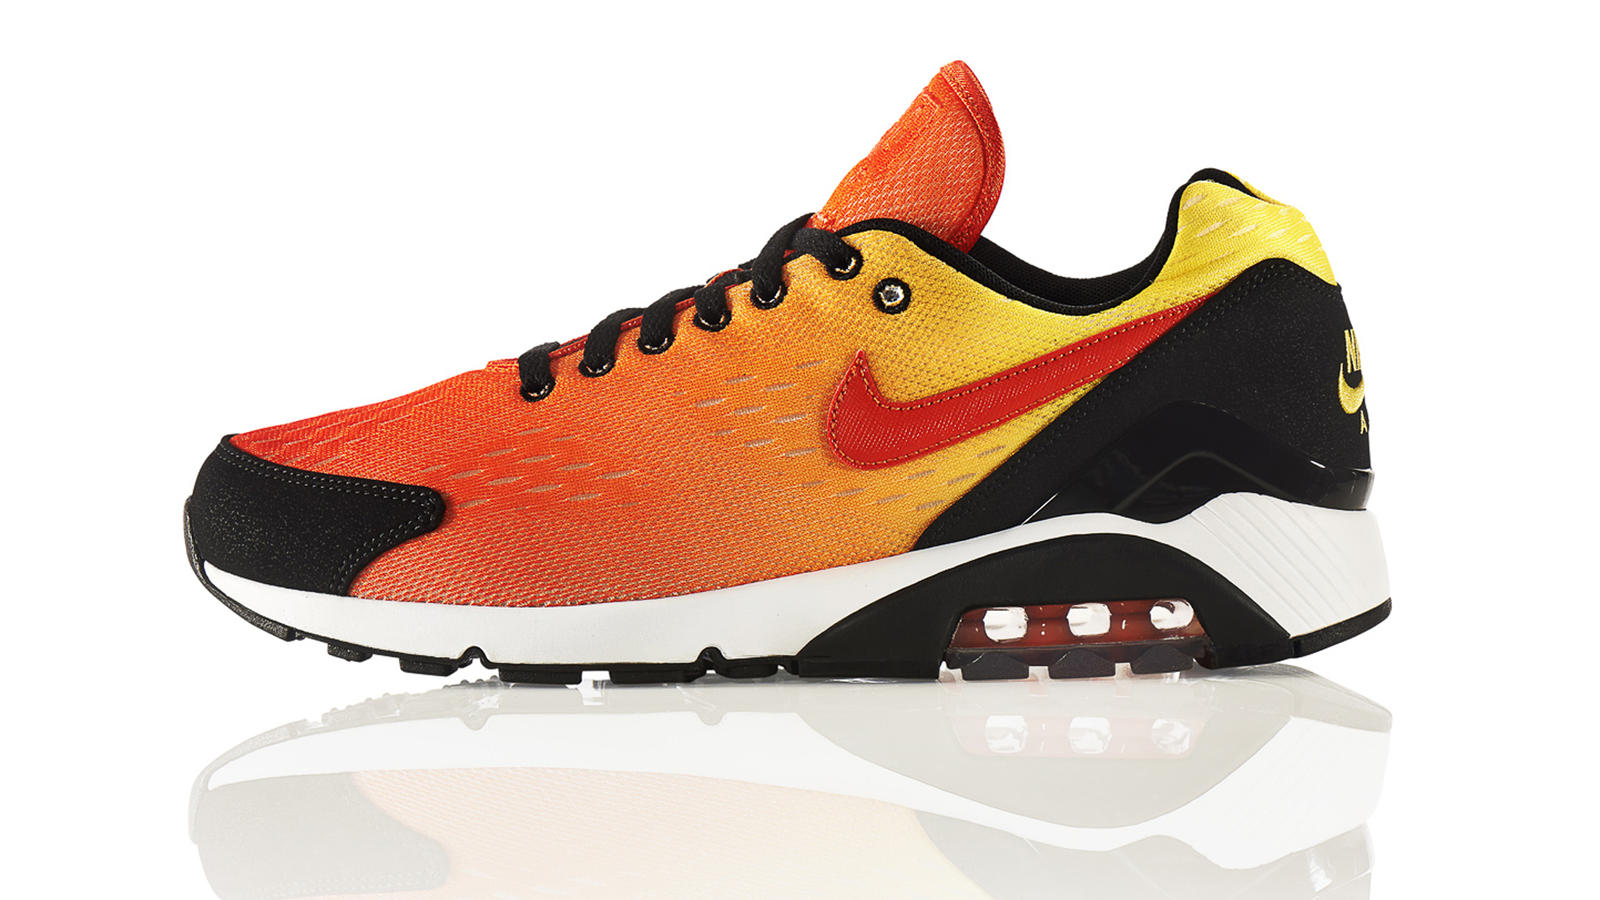 The Sky is the Limit with the Nike Air Max Sunset Pack